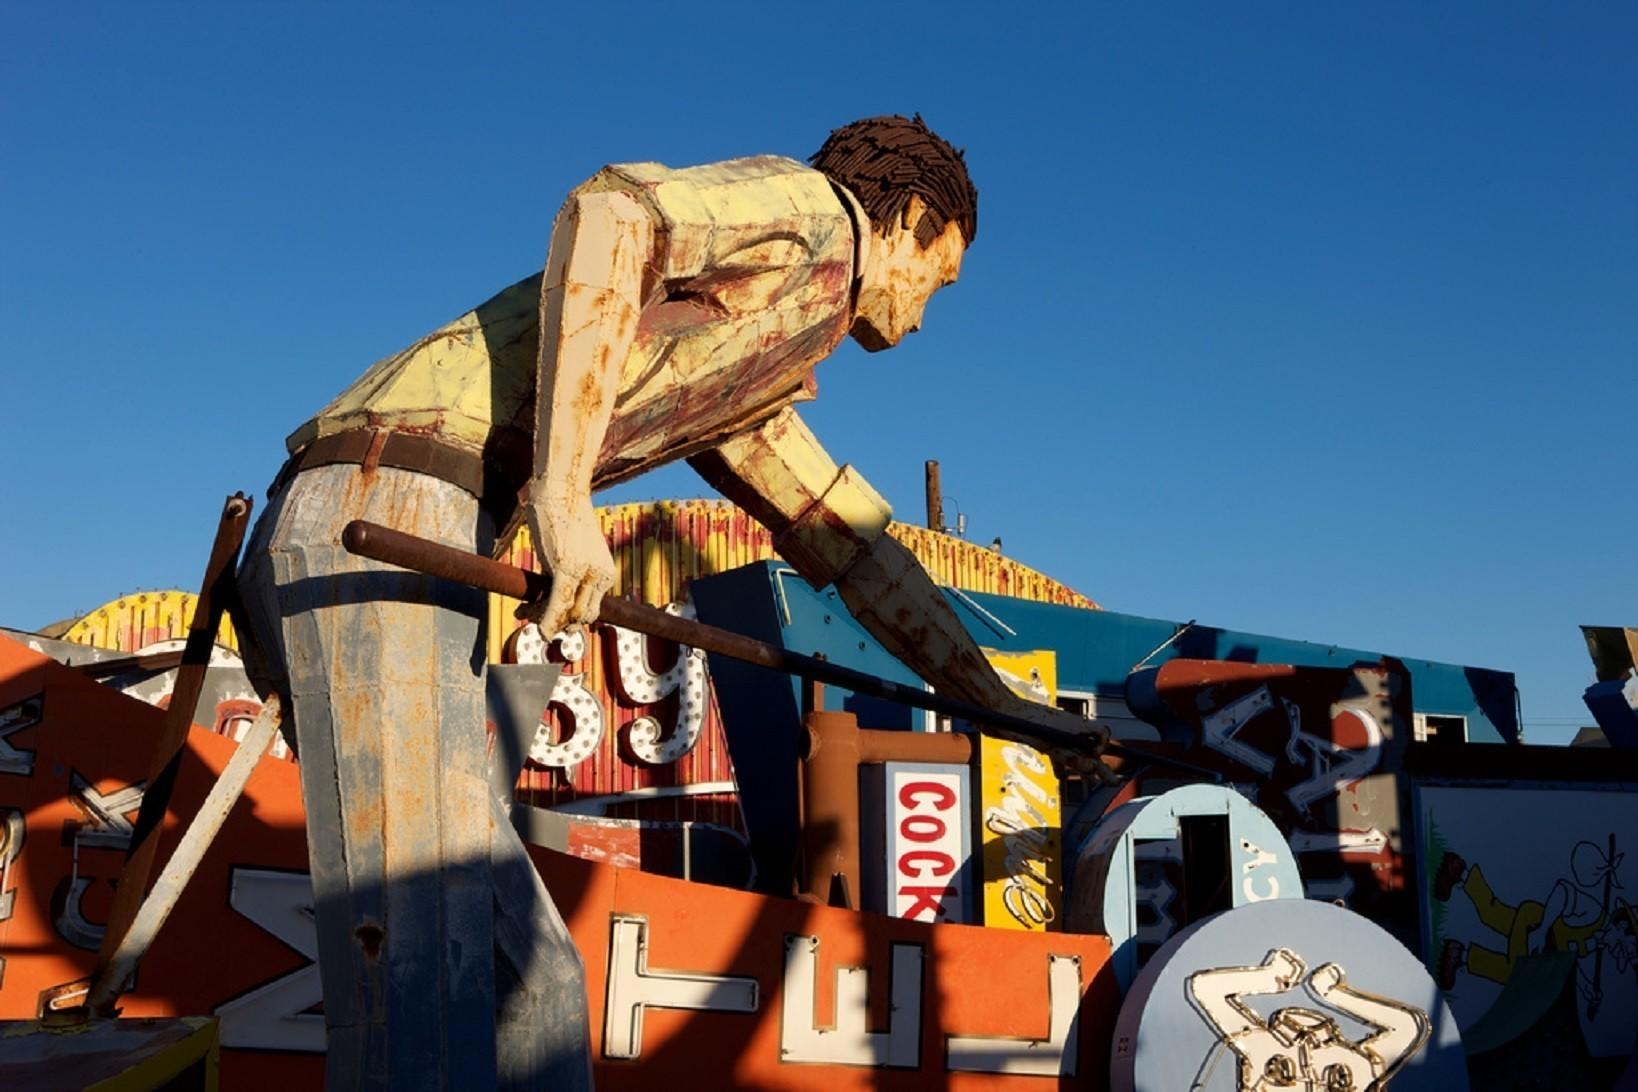 """A 10-foot-tall pool player that once graced Doc and Eddy's Pool Hall is one of the attractions at the Neon Museum in Las Vegas. It made a list of """"50 Museums Worth Traveling For"""" that highlights one museum in each state."""